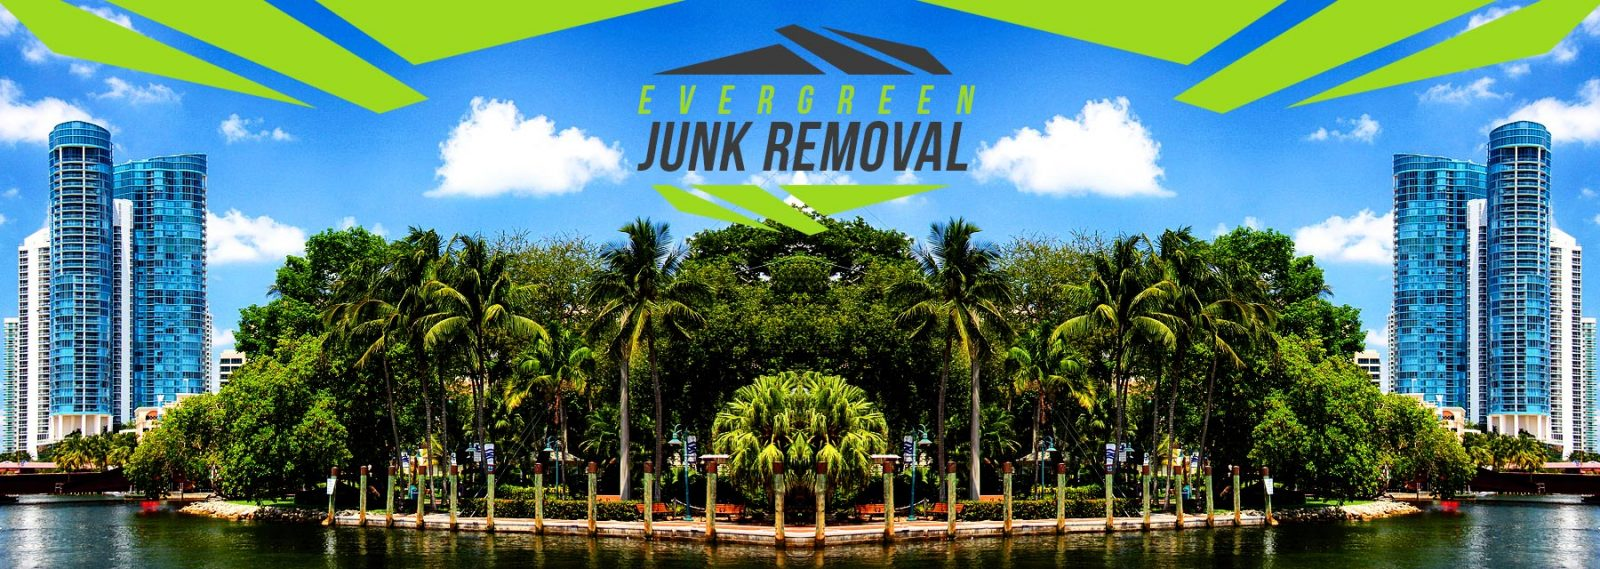 Miami Lakes Hot Tub Removal Company